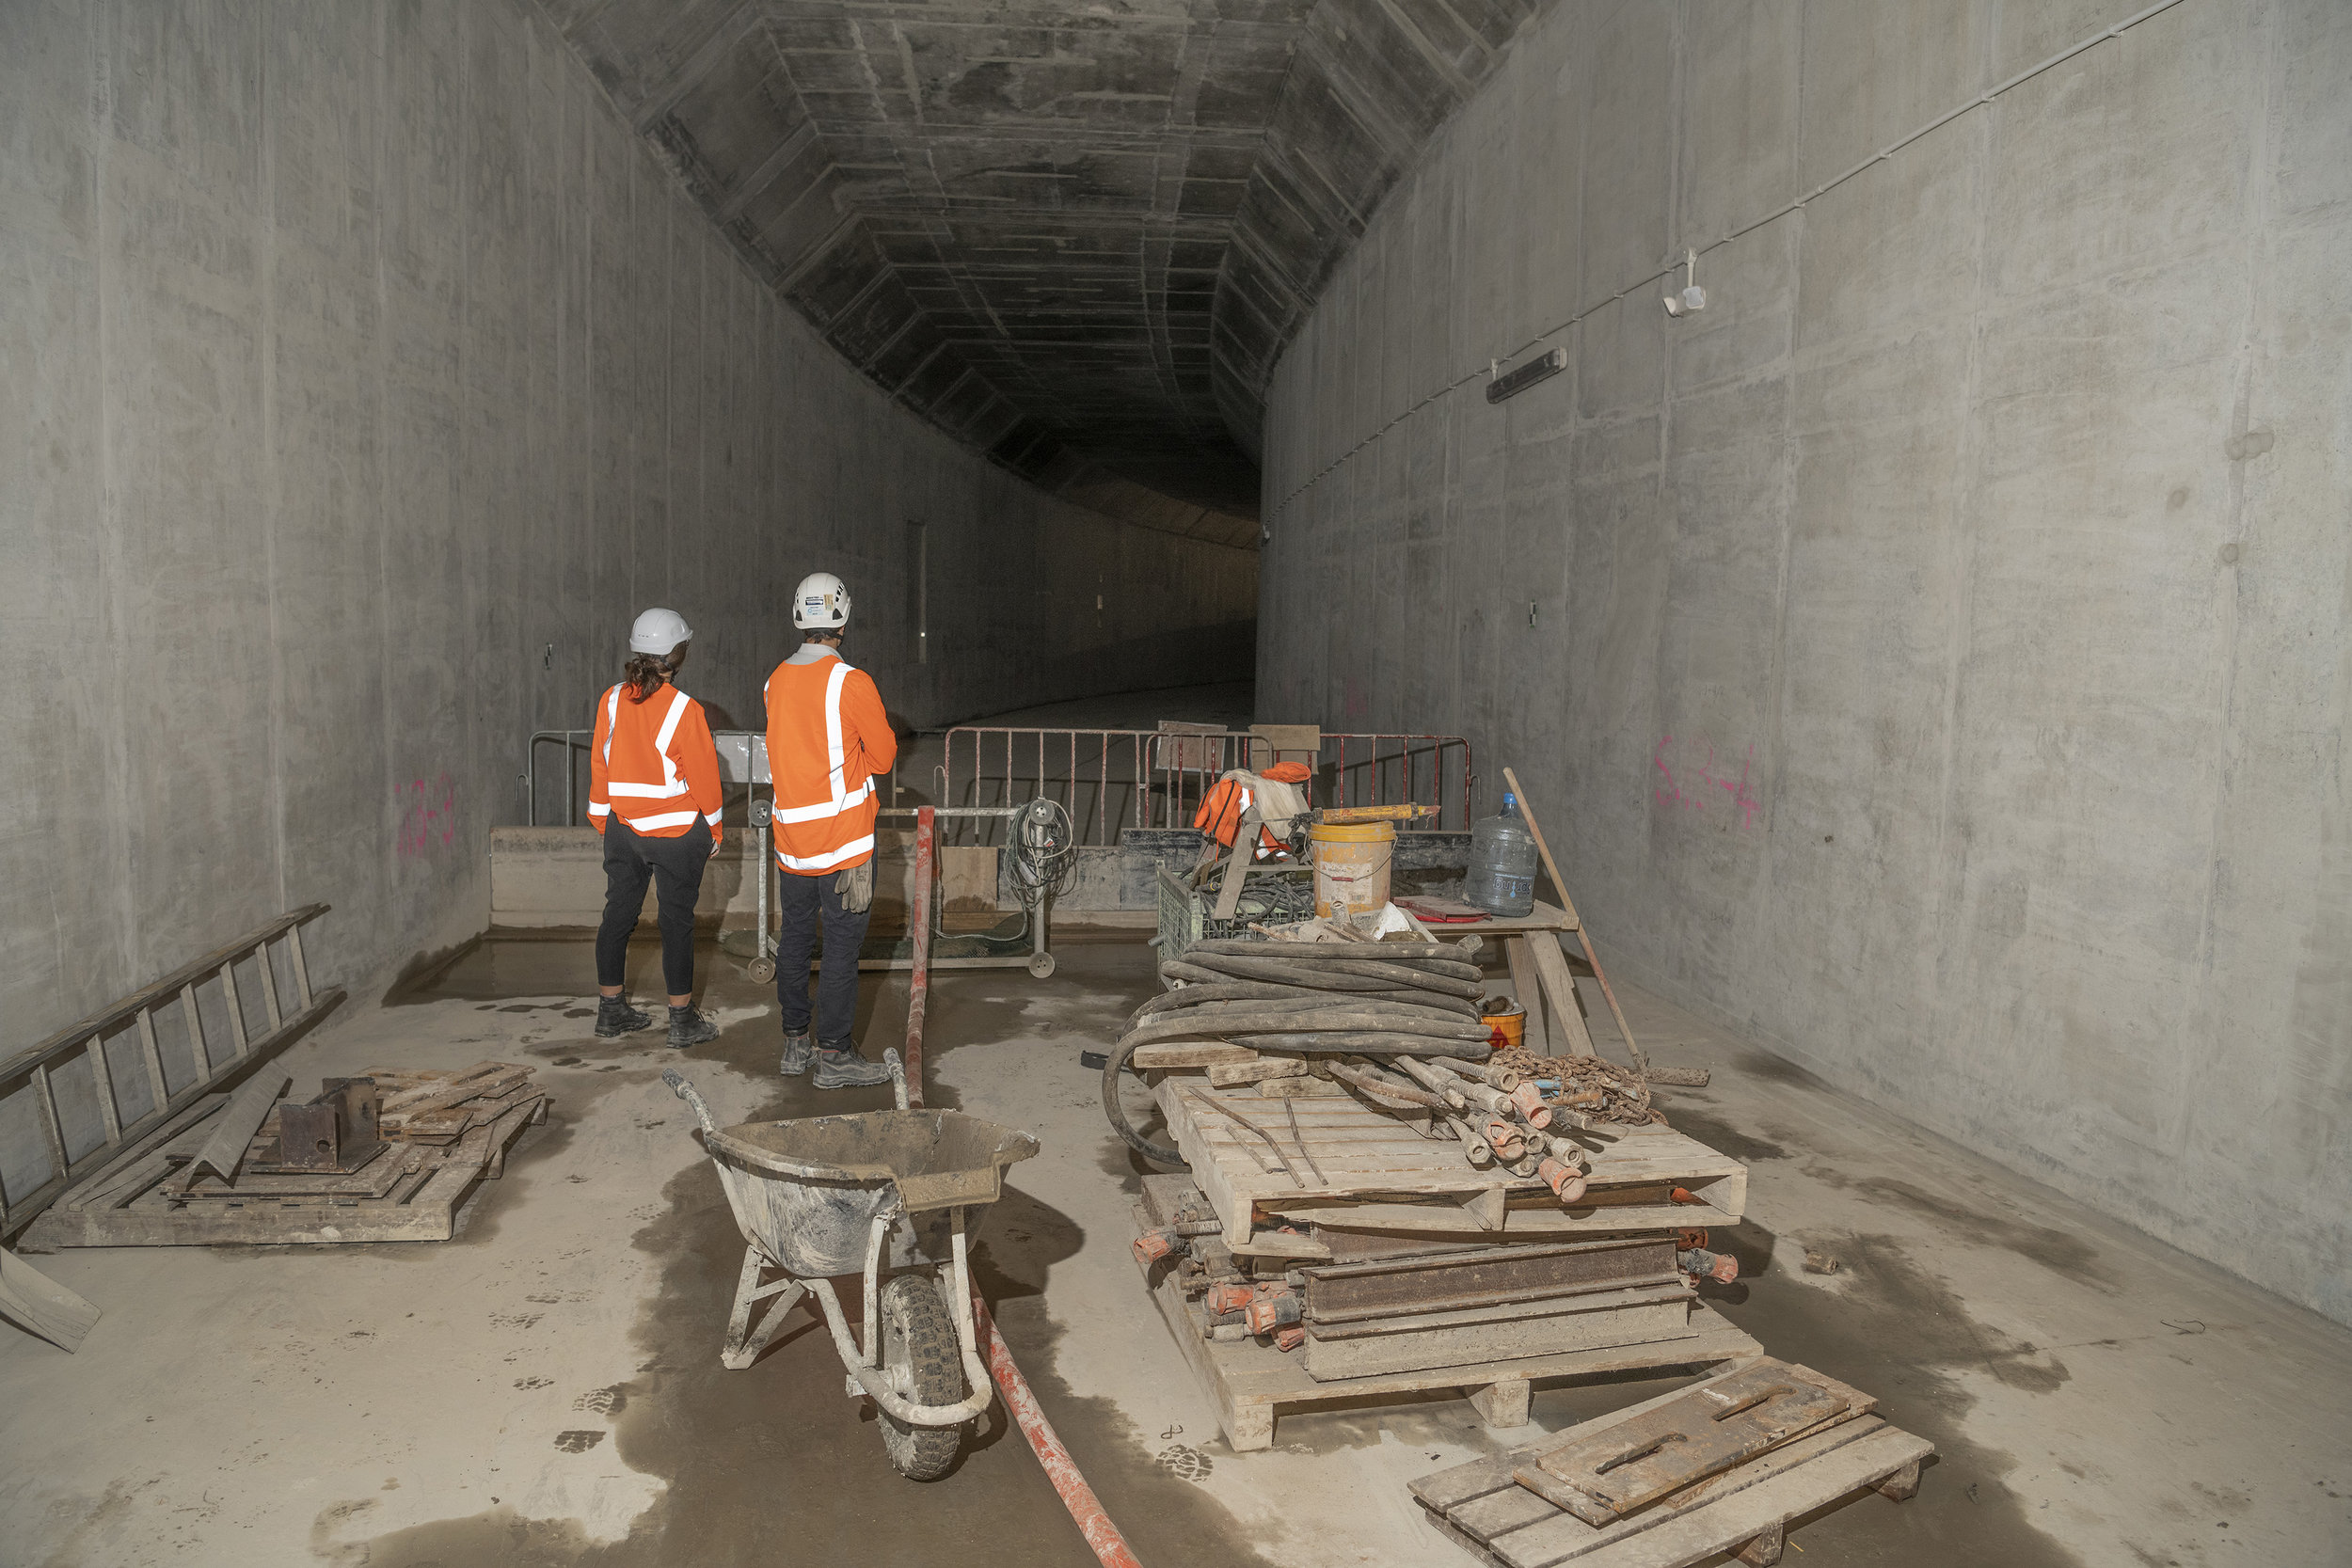 Tunnel construction 9 May 20219